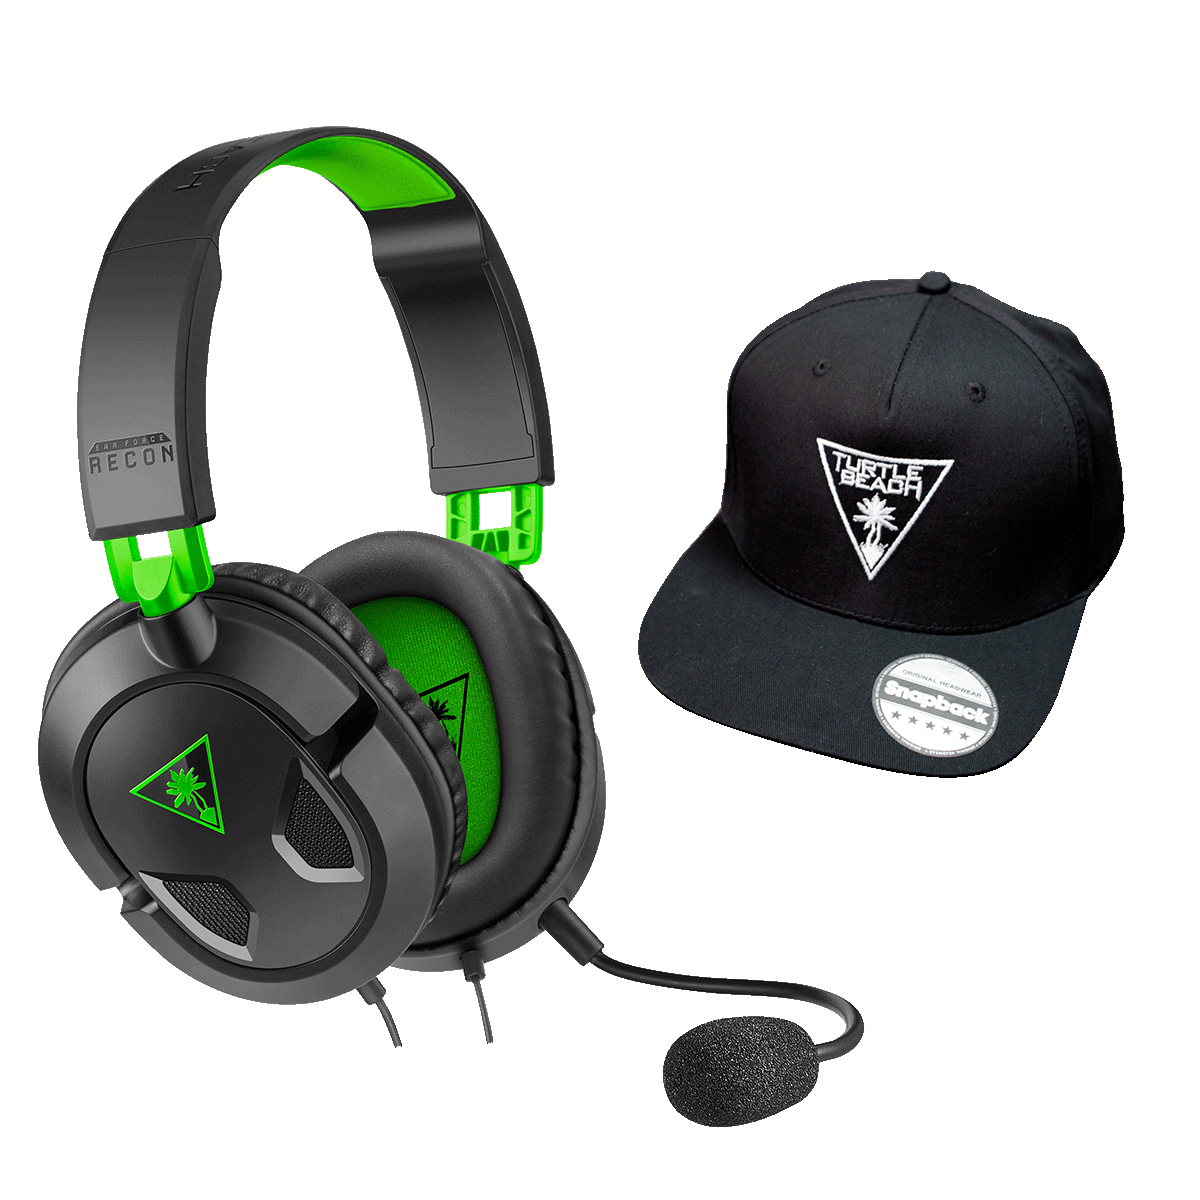 Turtle Beach Recon 50X Headset Head-band 3.5 mm connector Black, Green